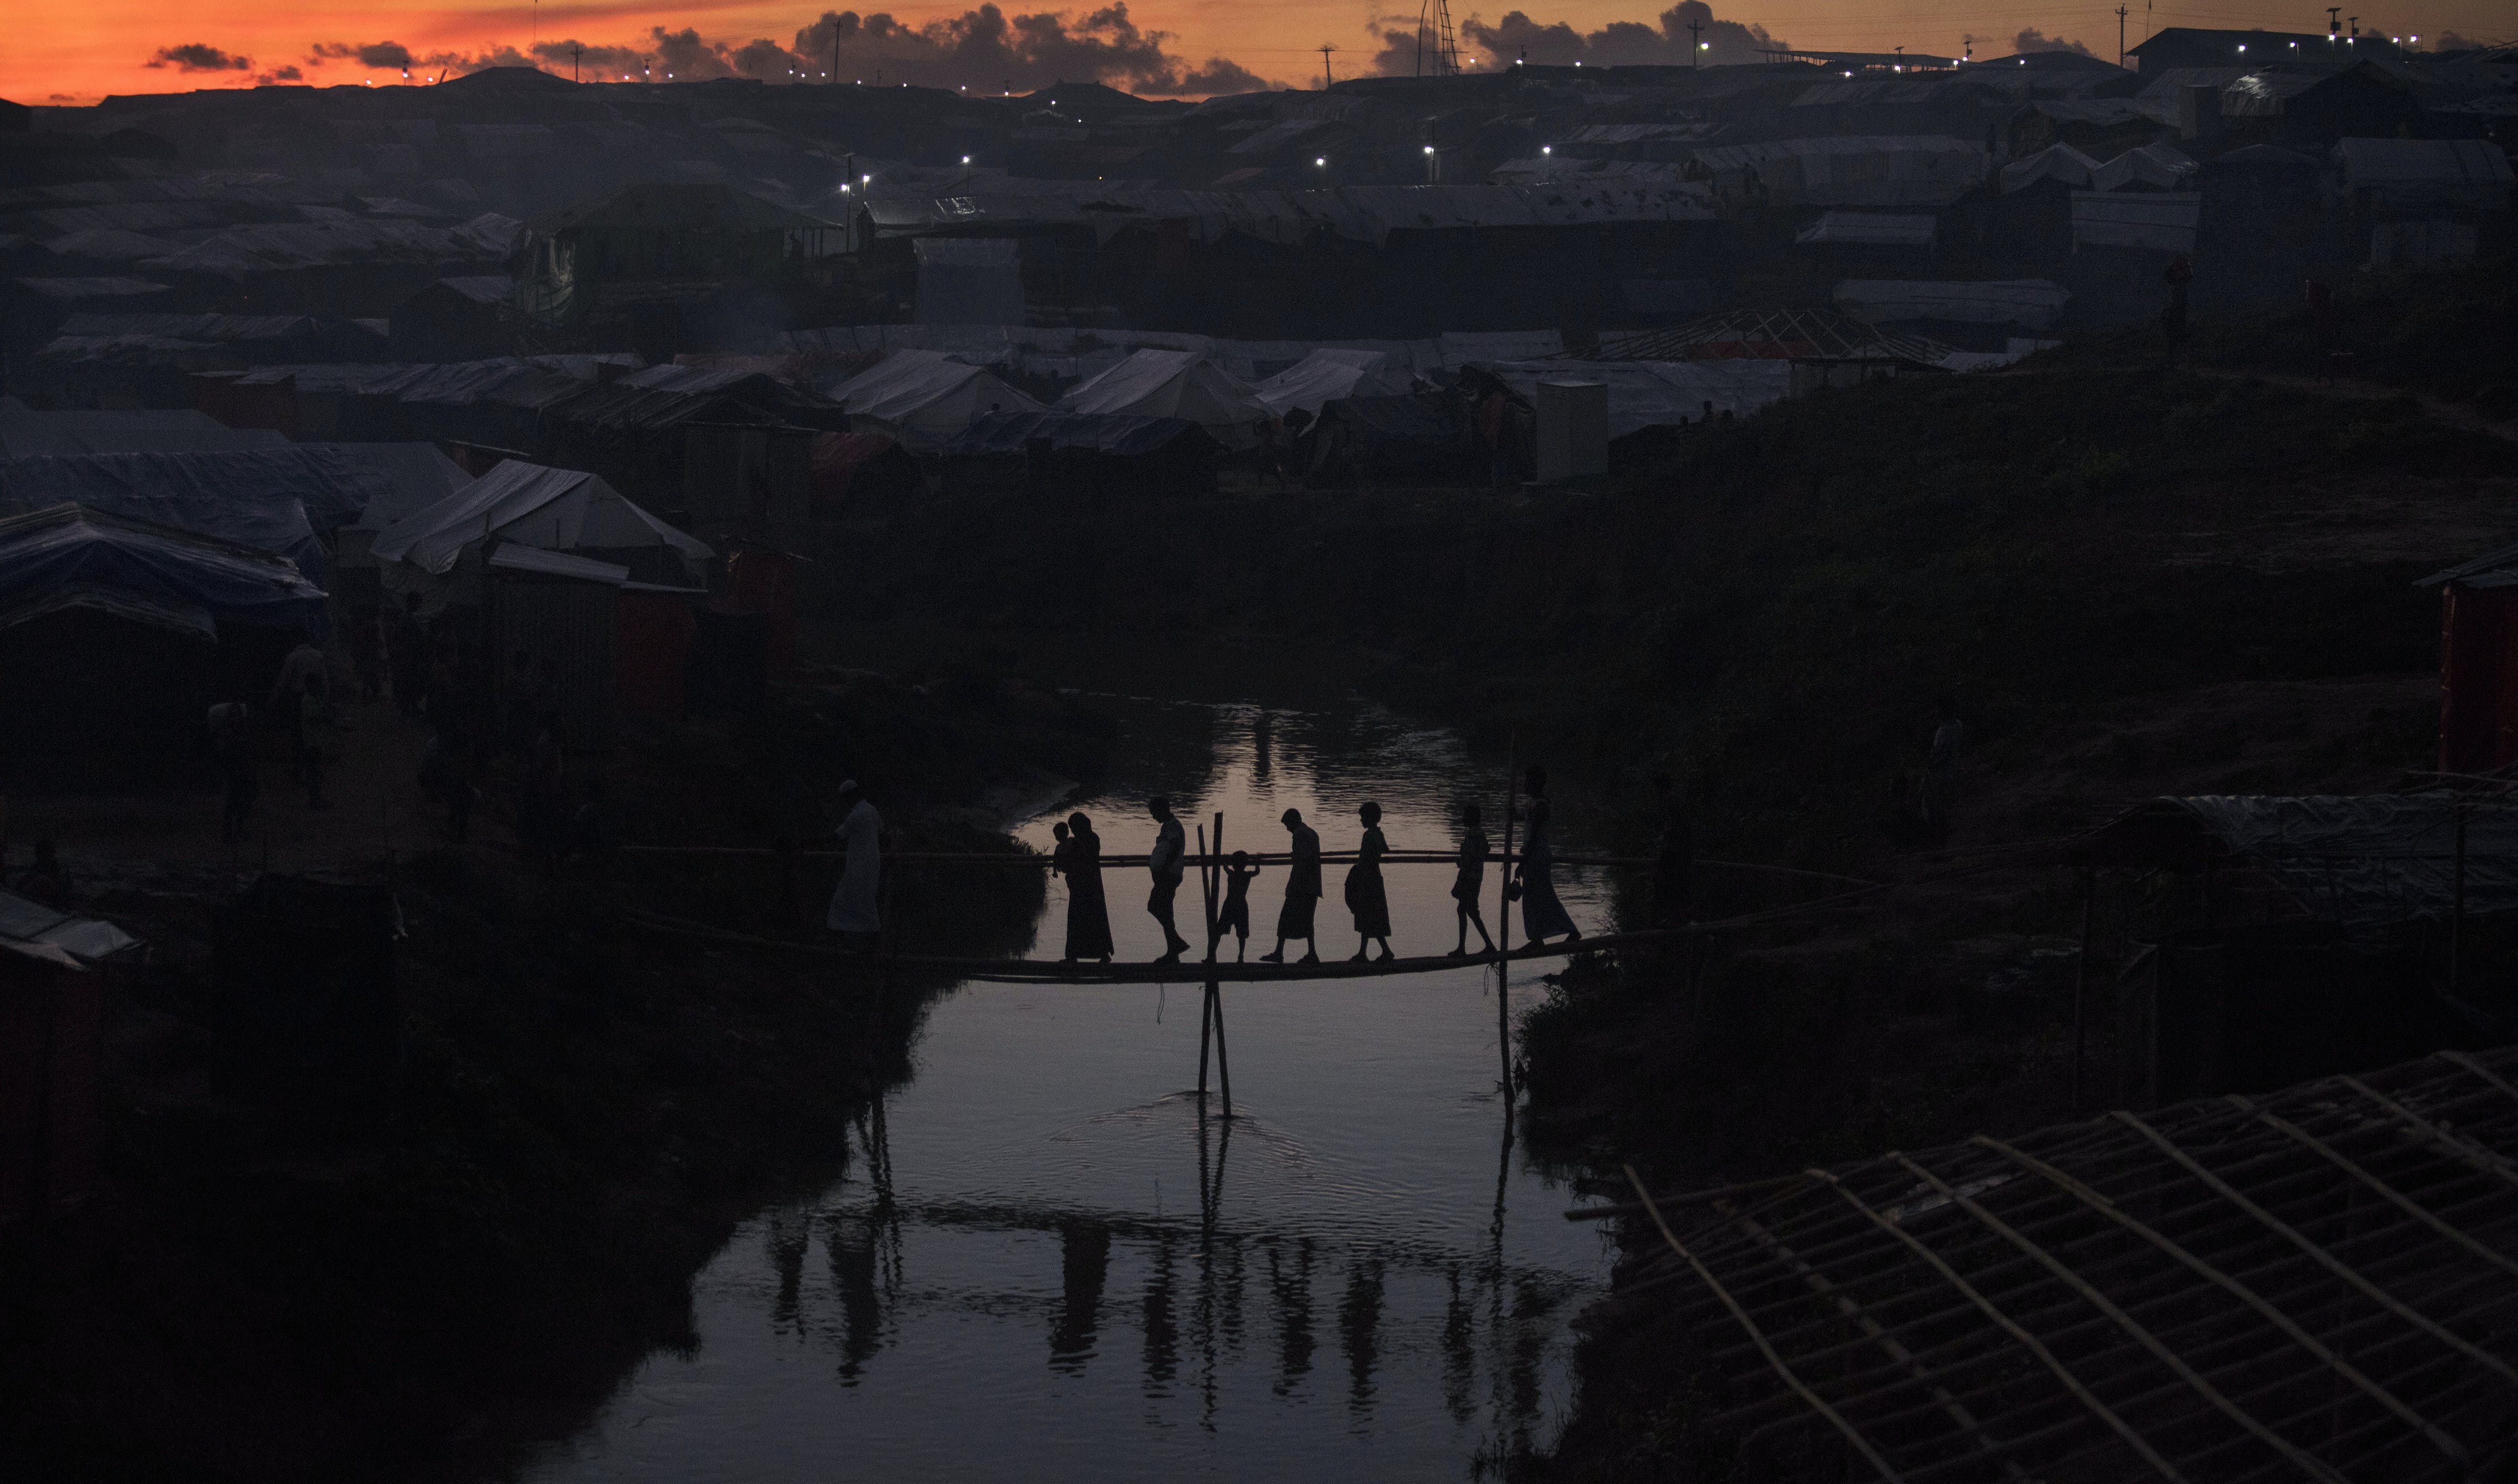 KUTUPALONG, BANGLADESH - OCTOBER 13: People cross a bamboo bridge over a stream as the sun sets on October 13, 2017 at the Kutuplaong refugee camp, Cox's Bazar, Bangladesh. According to UN sources around 519,000 Rohingya refugees had fled across the border from Myanmar to Bangladesh since 25 August. Thousands more remain stranded in Myanmar without the means to cross the border into Bangladesh. (Photo by Paula Bronstein/Getty Images)